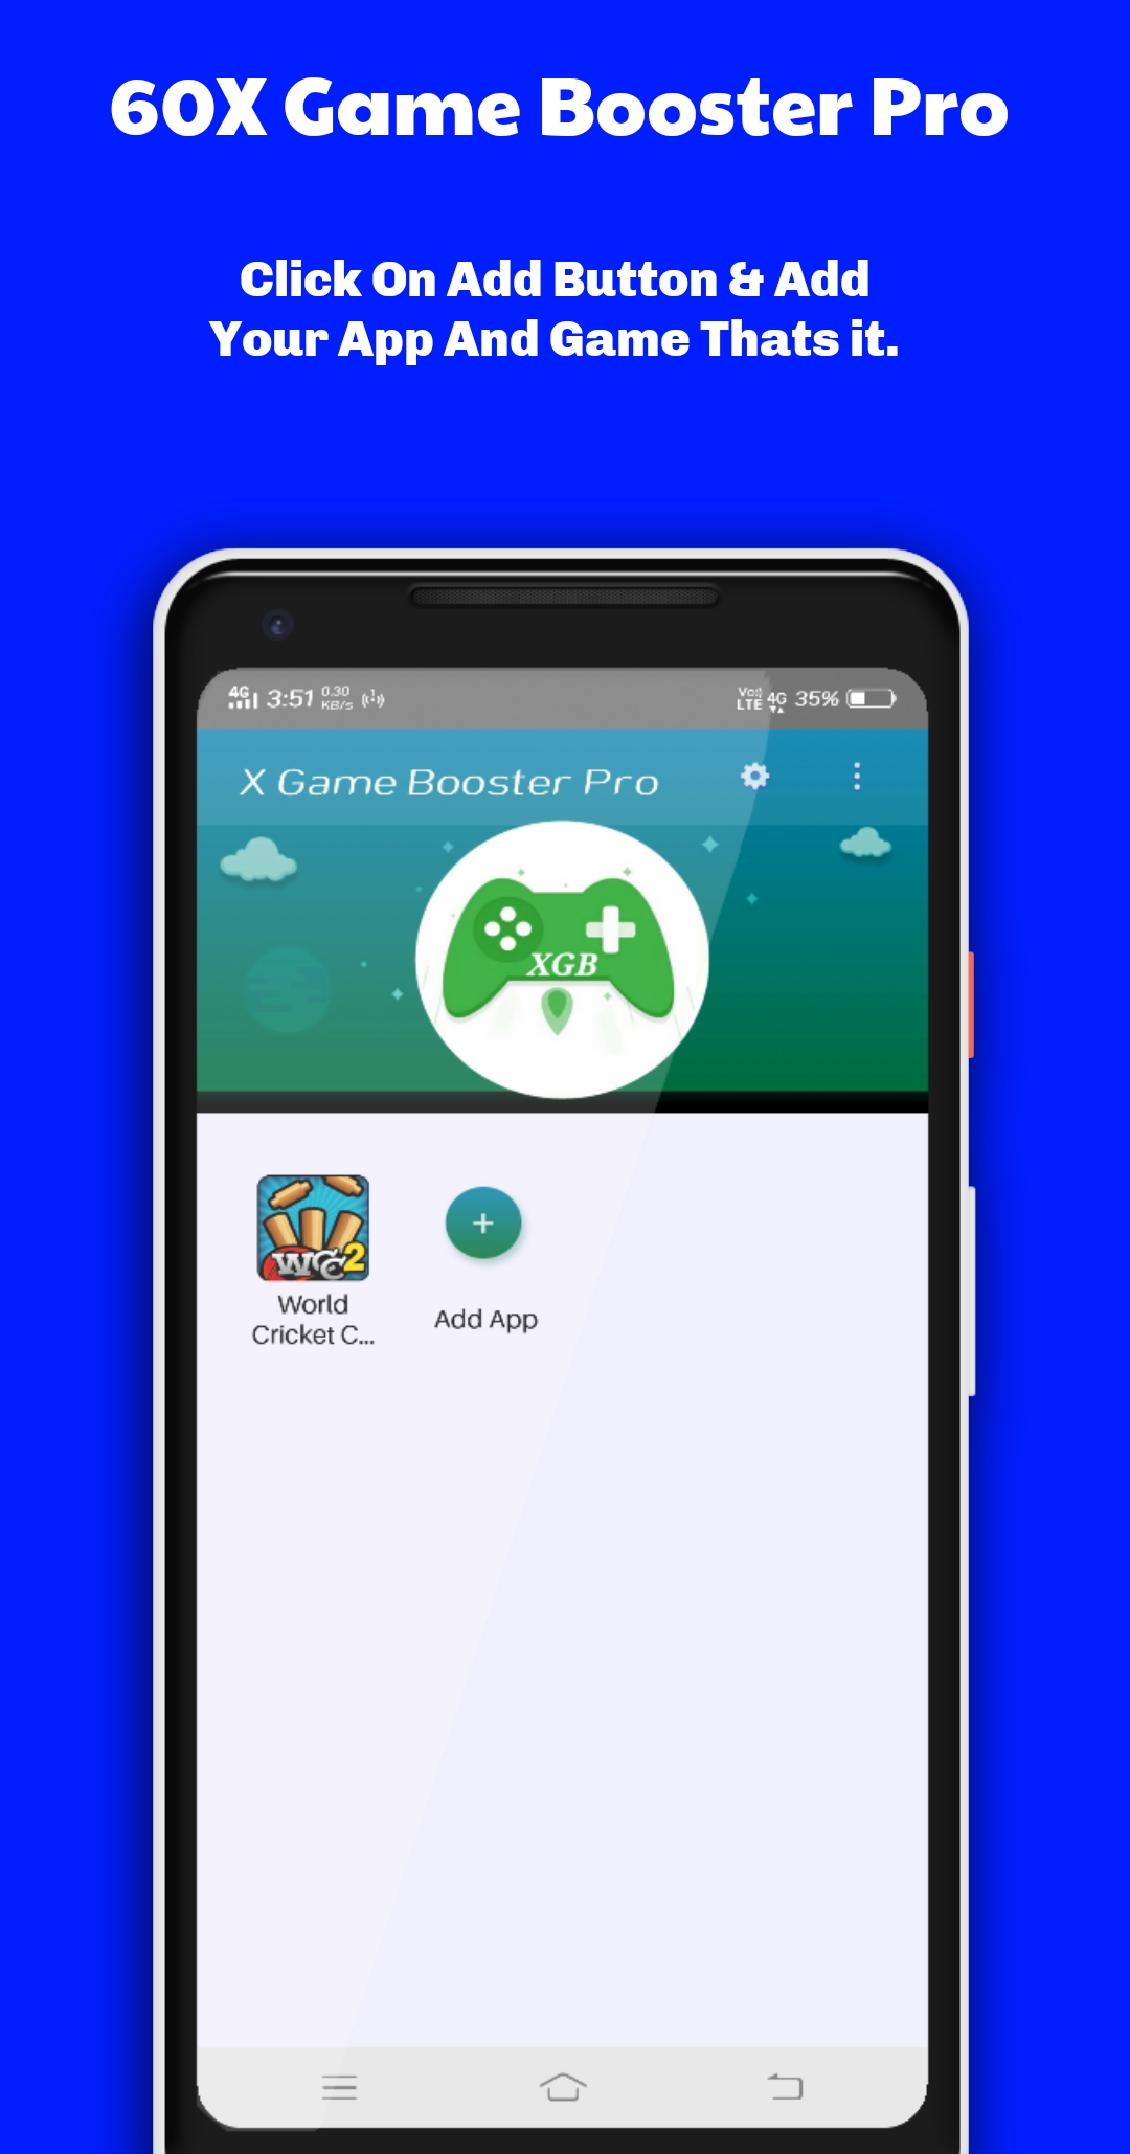 60X Game Booster Pro - Powerful And Free GamePad for Android - APK Download